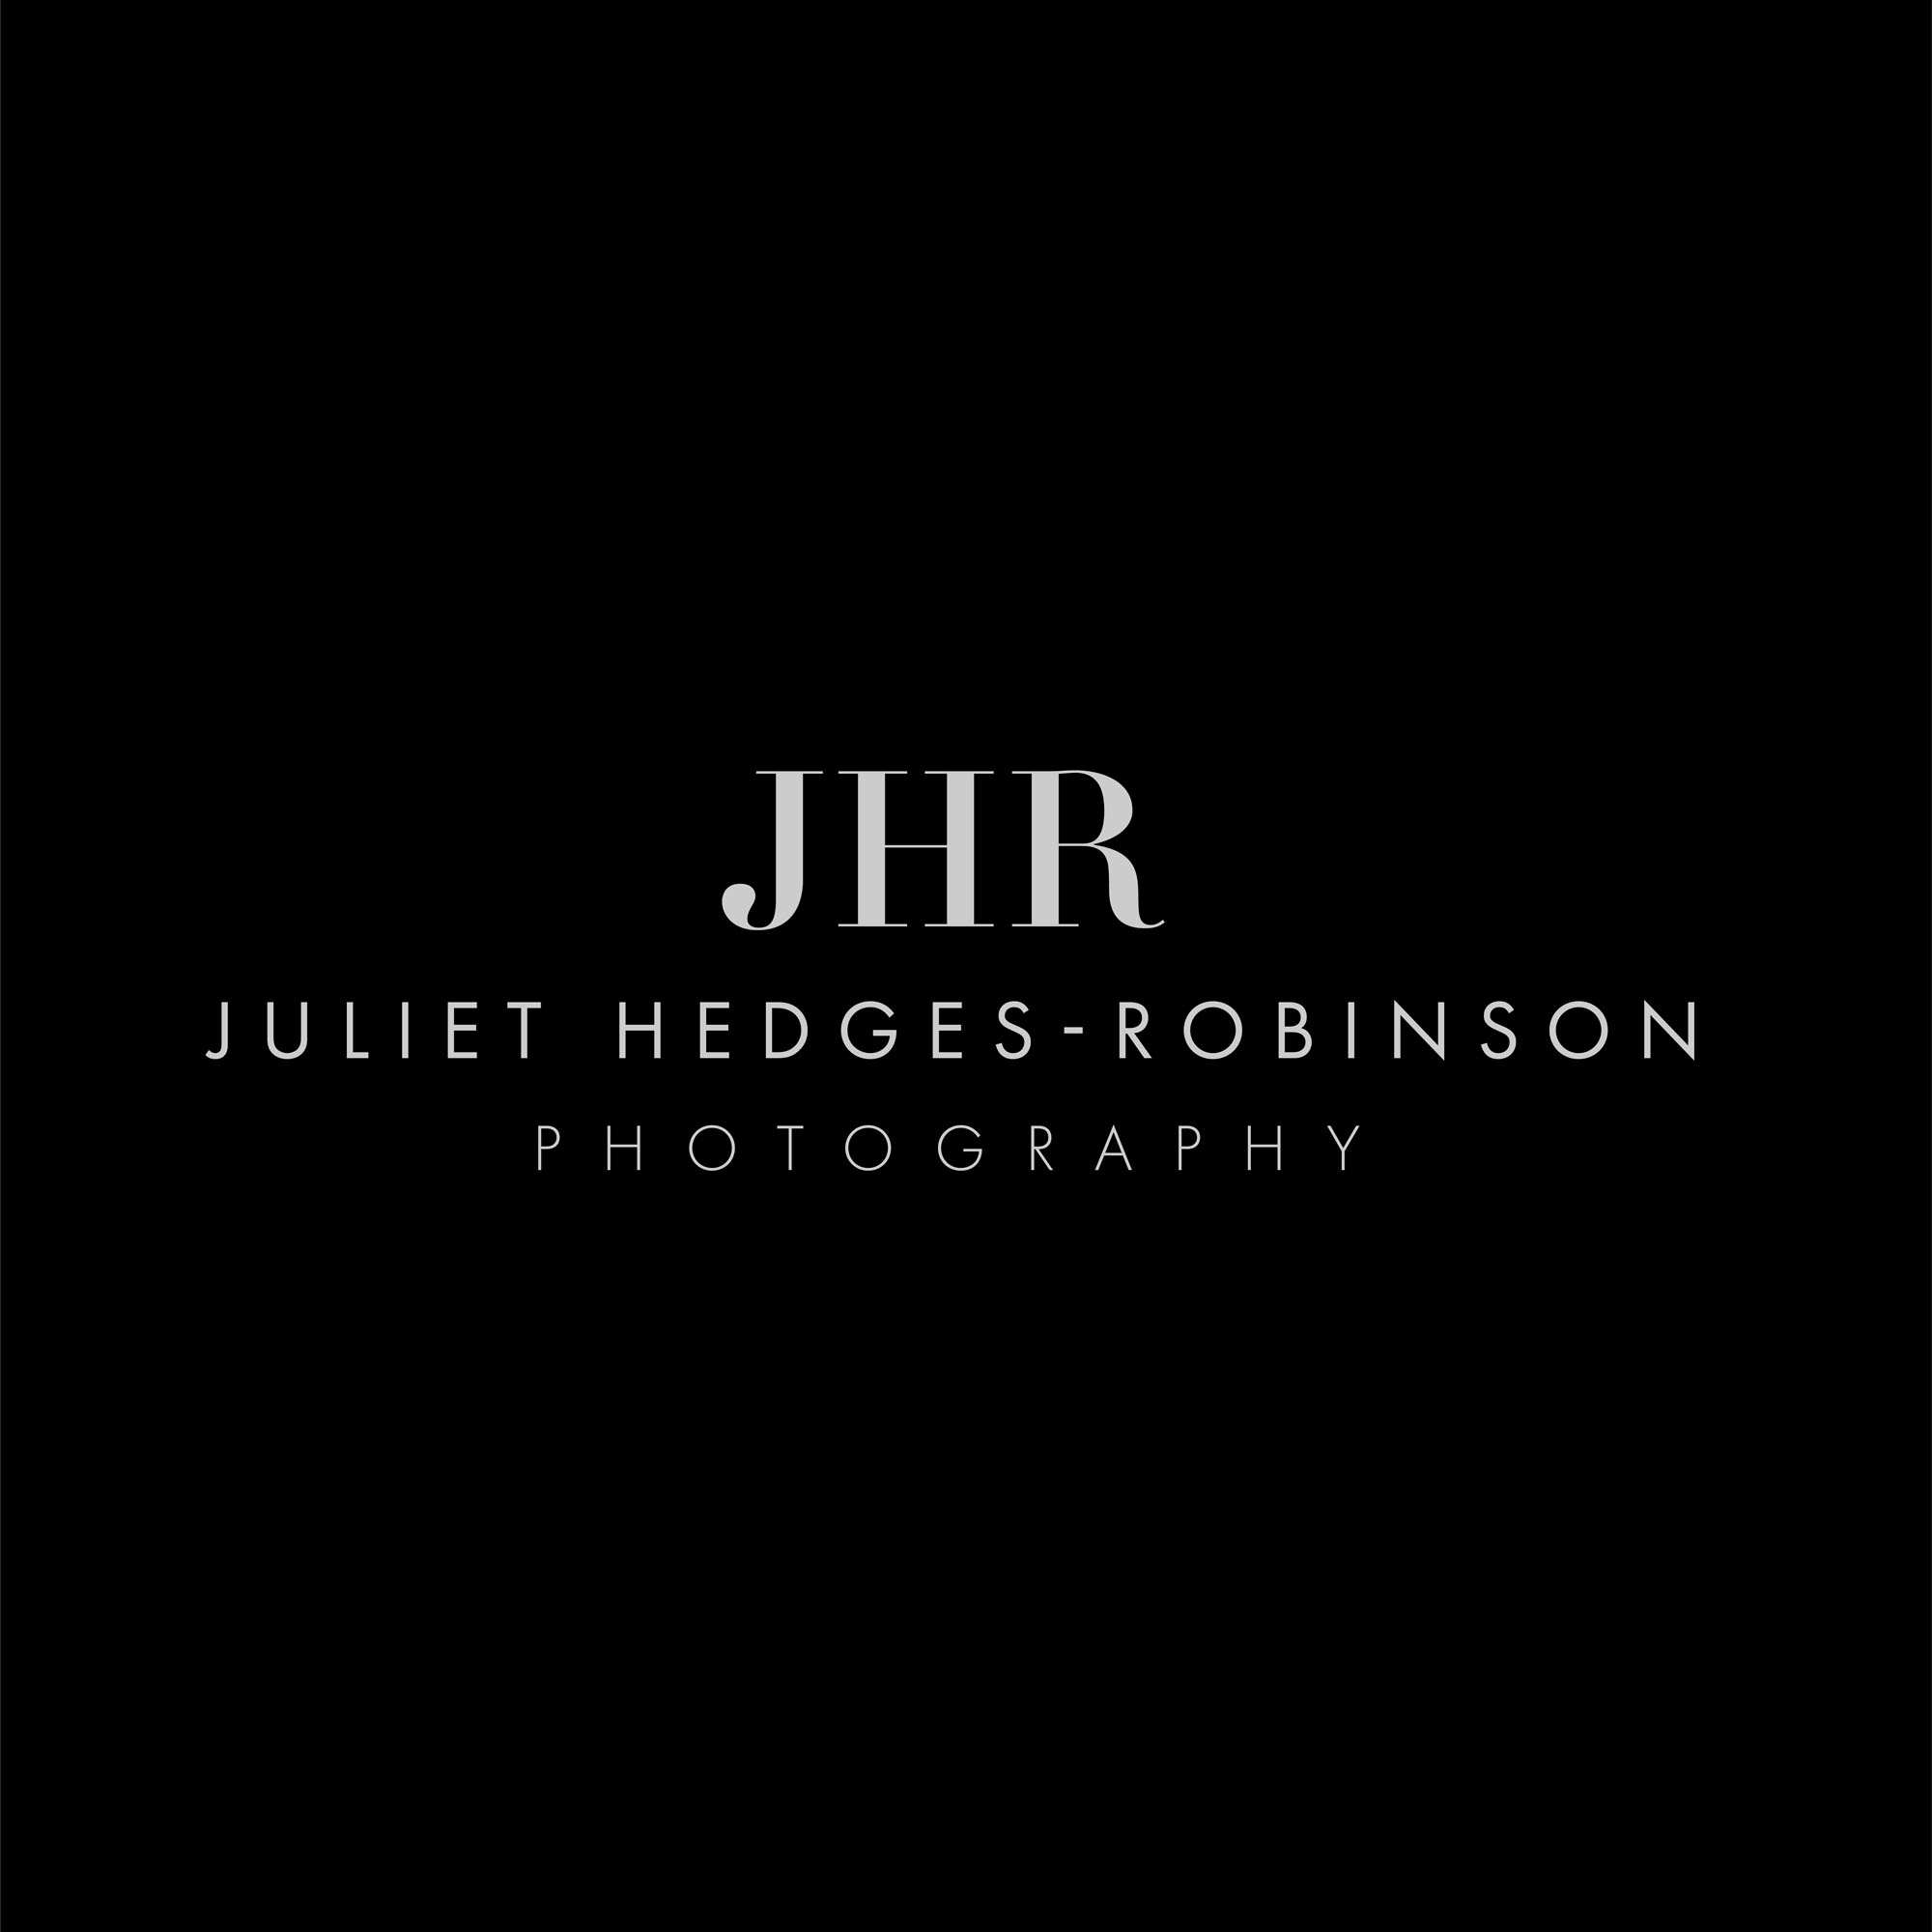 JHR Photography Logo Design